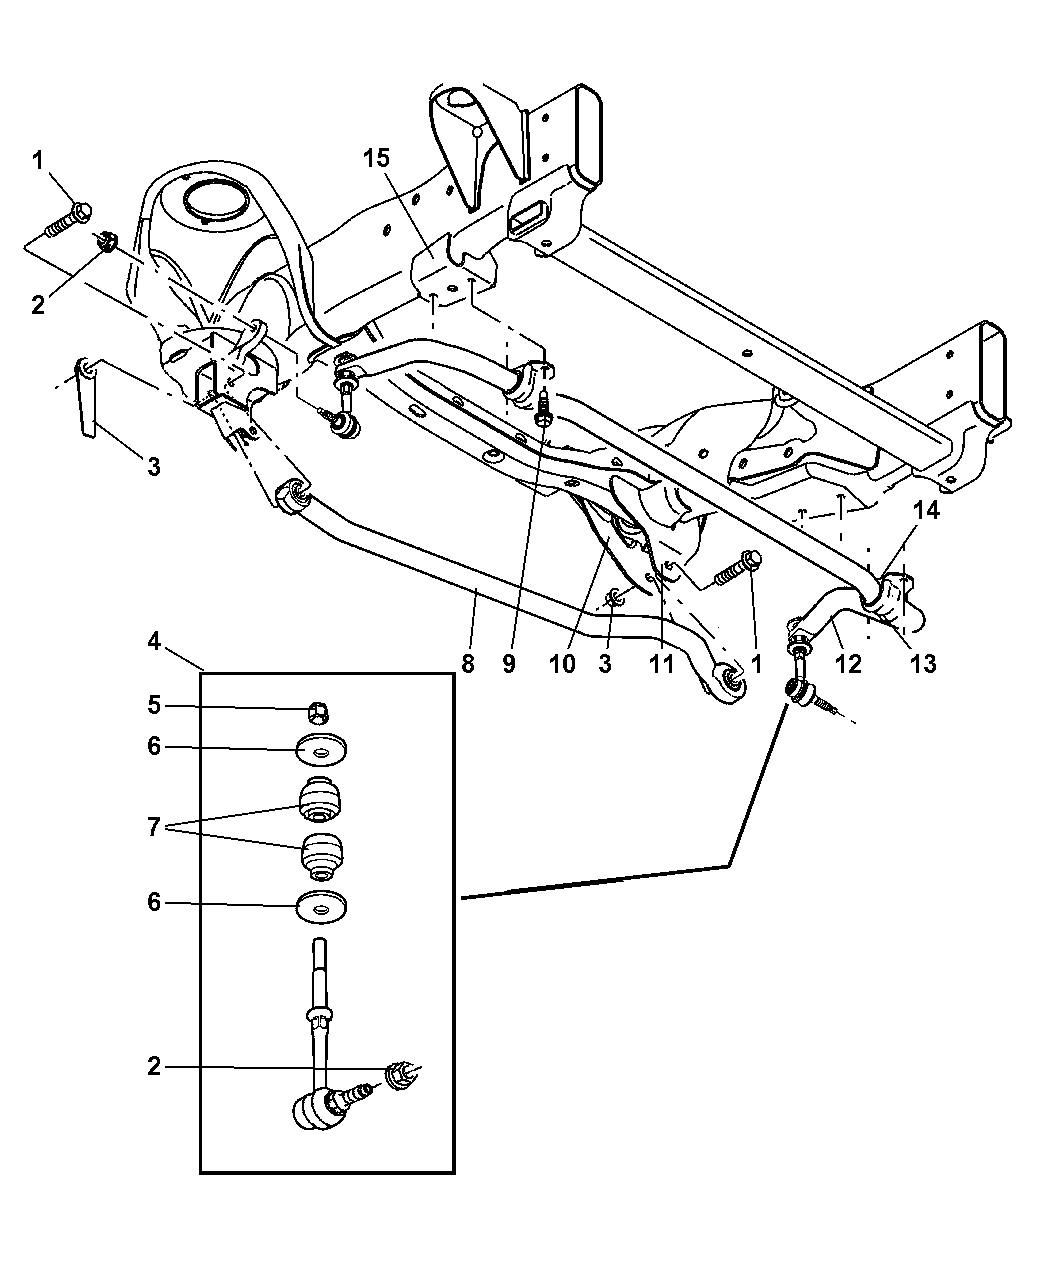 Dodge 3500 Suspension Diagram Schema Wiring Diagrams Make Curve Make Curve Primopianobenefit It